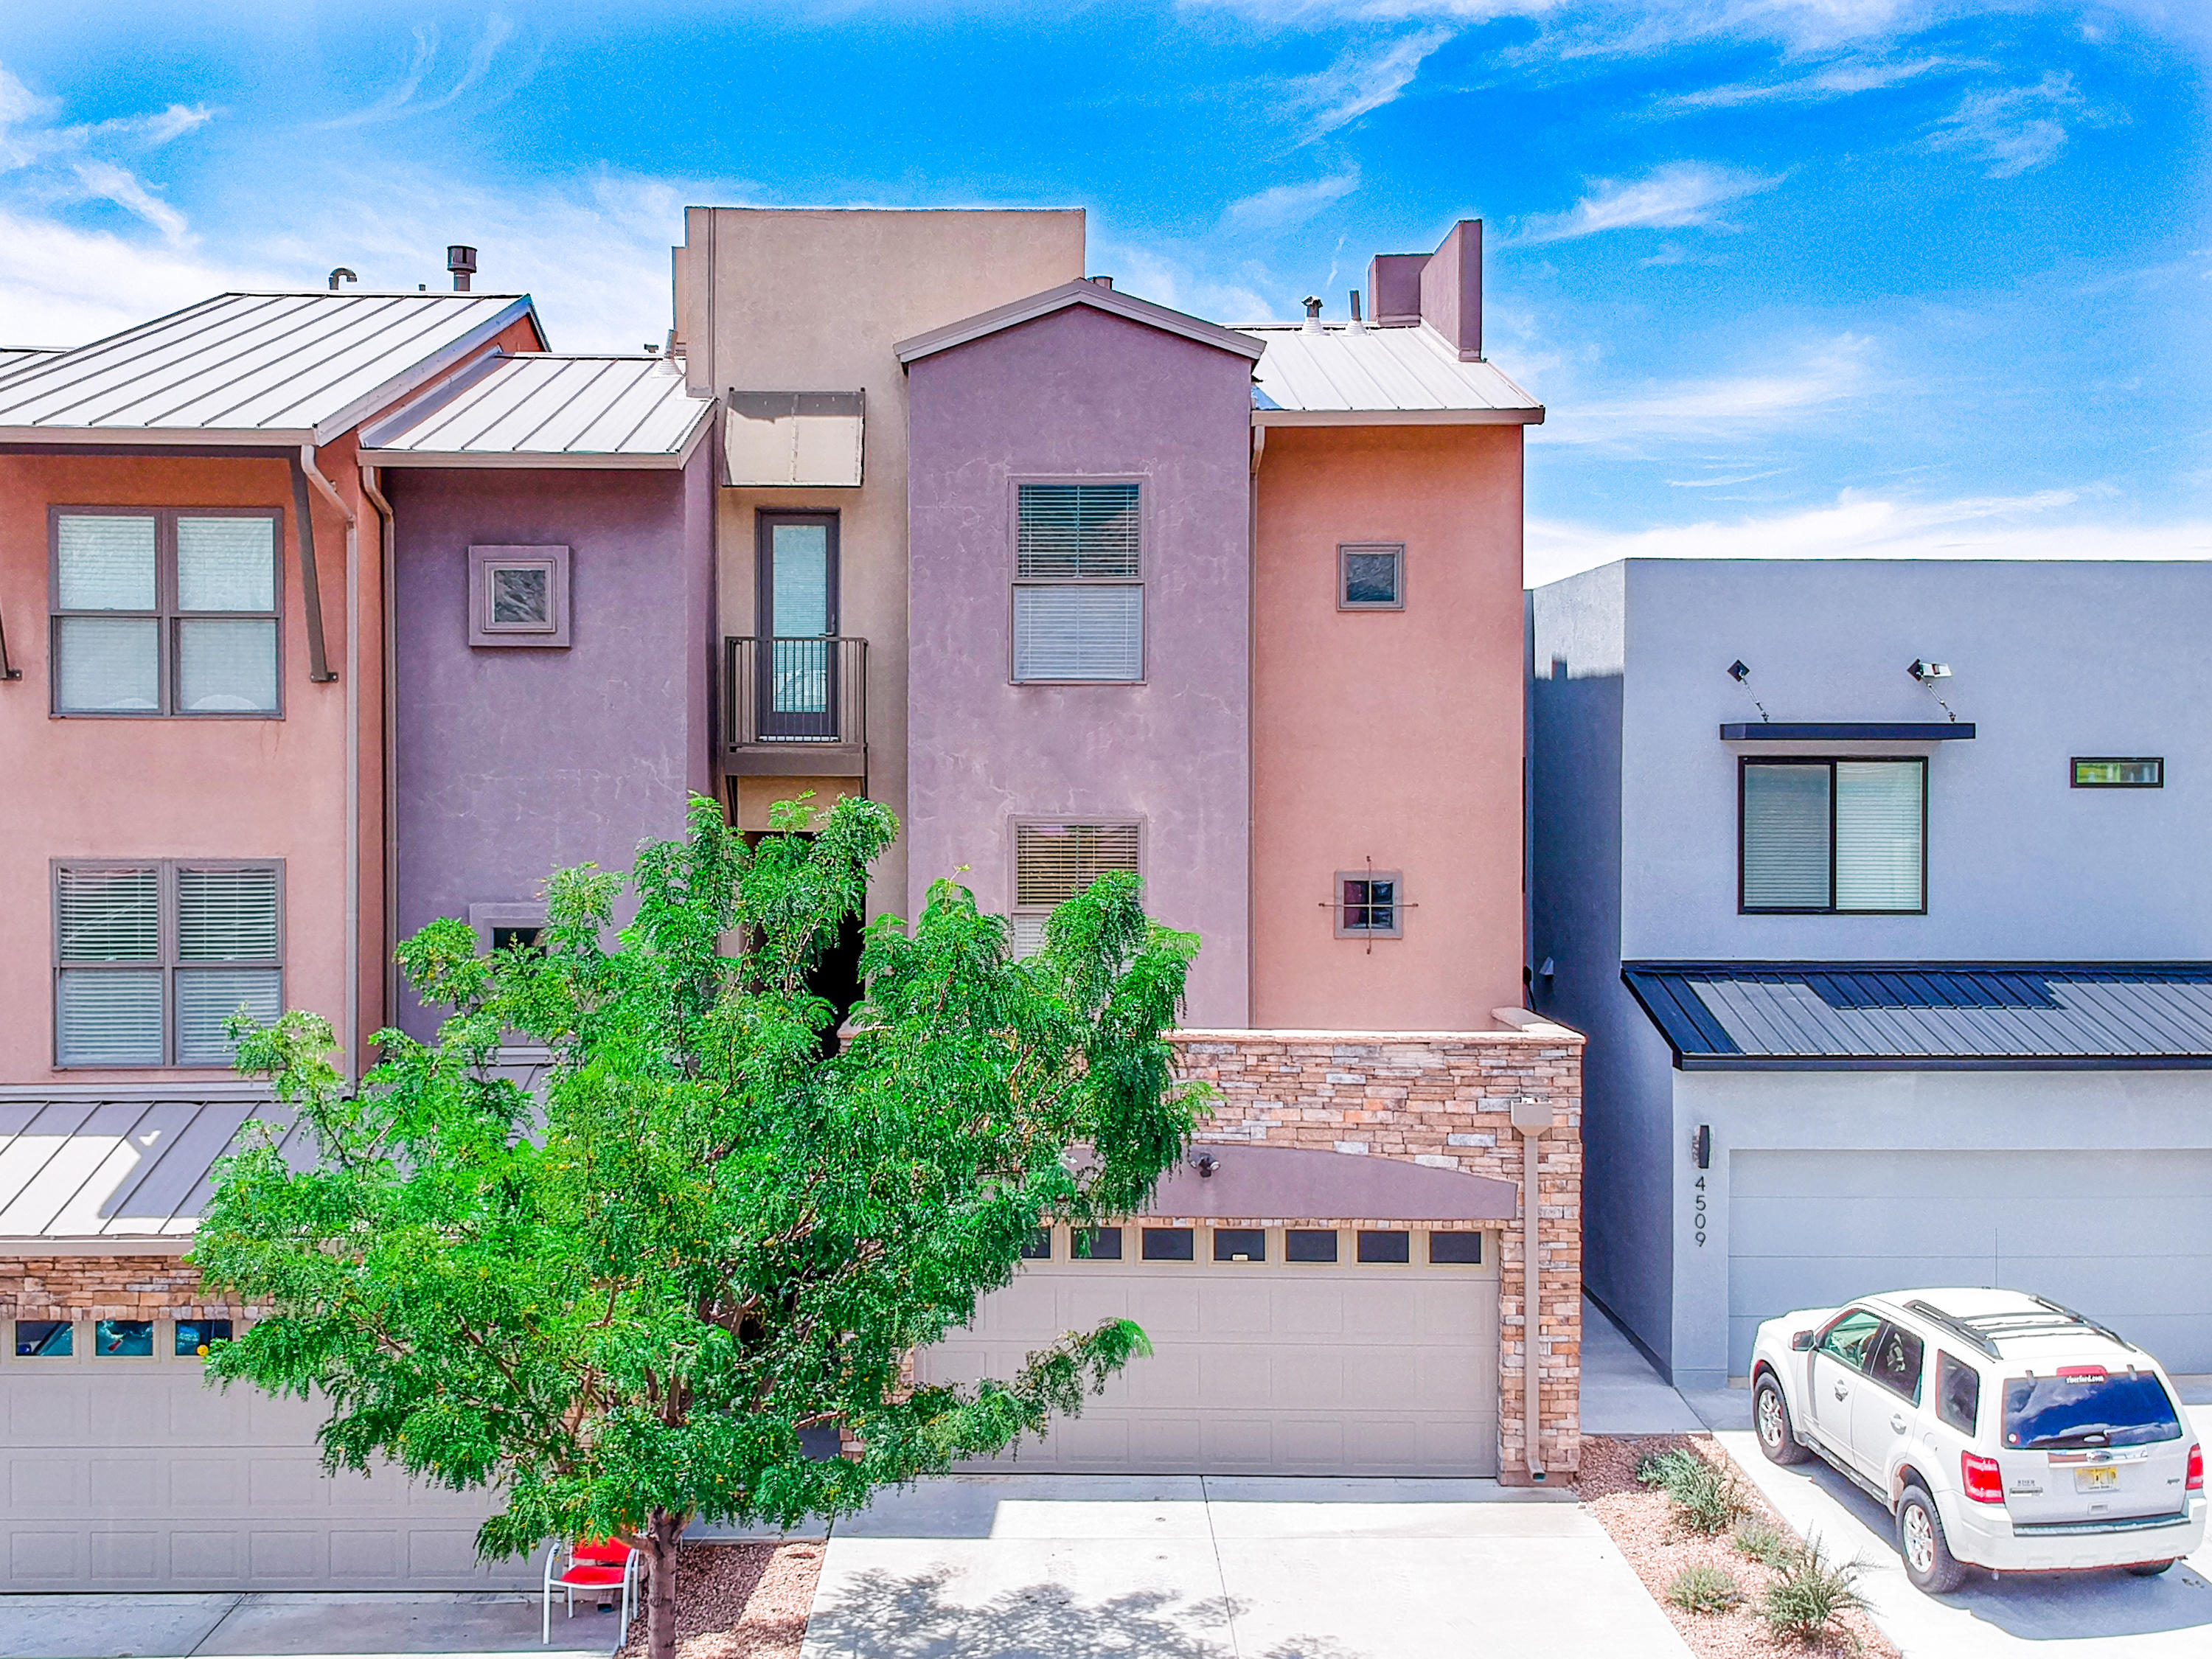 AH Appealing!  Architecturally interesting in & out.  Premier NE heights location is close to in-demand schools, shopping, dining, & hiking. Certified to Build Green NM Silver standards & loaded with features you expect of fine homes.  Kitchen is finished with energy-efficient stainless steel appliances, tasteful tile, & granite countertops.  Move yourself & things easily between levels in custom & unique residential elevator.  Well-thought floor plan situates bedrooms privately & with access to sky decks & a balcony to enjoy our NM outdoors. Come see this efficiently constructed Parade of Homes award winner. AH...comfy year round with 15.0 SEER refrigerated air, furnace installed in insulated space, & tankless water heater. The list goes on....Come see it today; tomorrow may be too late